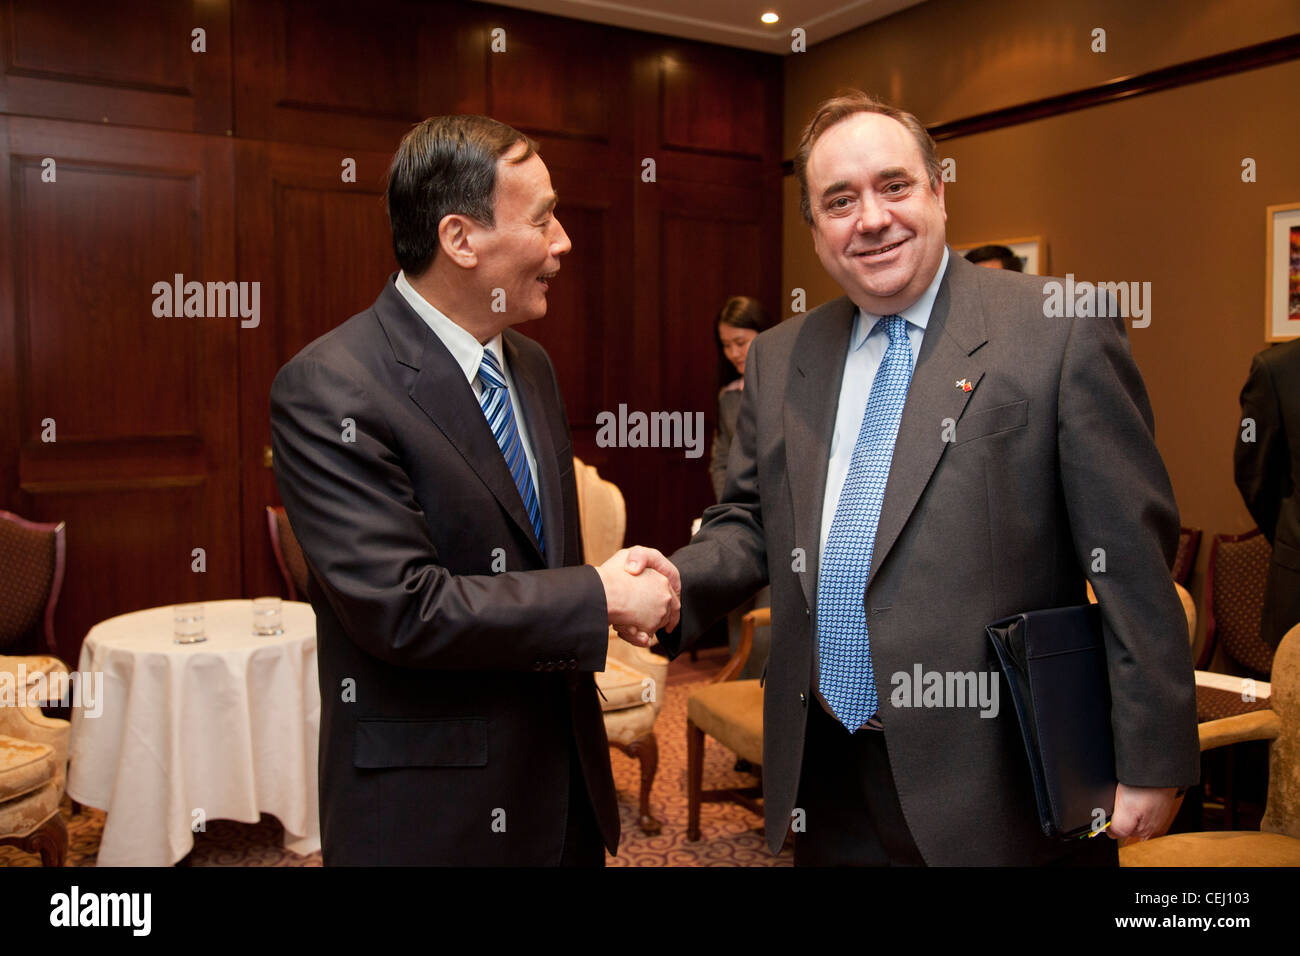 Scotland's First Minister Alex Salmond meets China's Vice Premier Wang Qishan ahead of joint economic talks - Stock Image